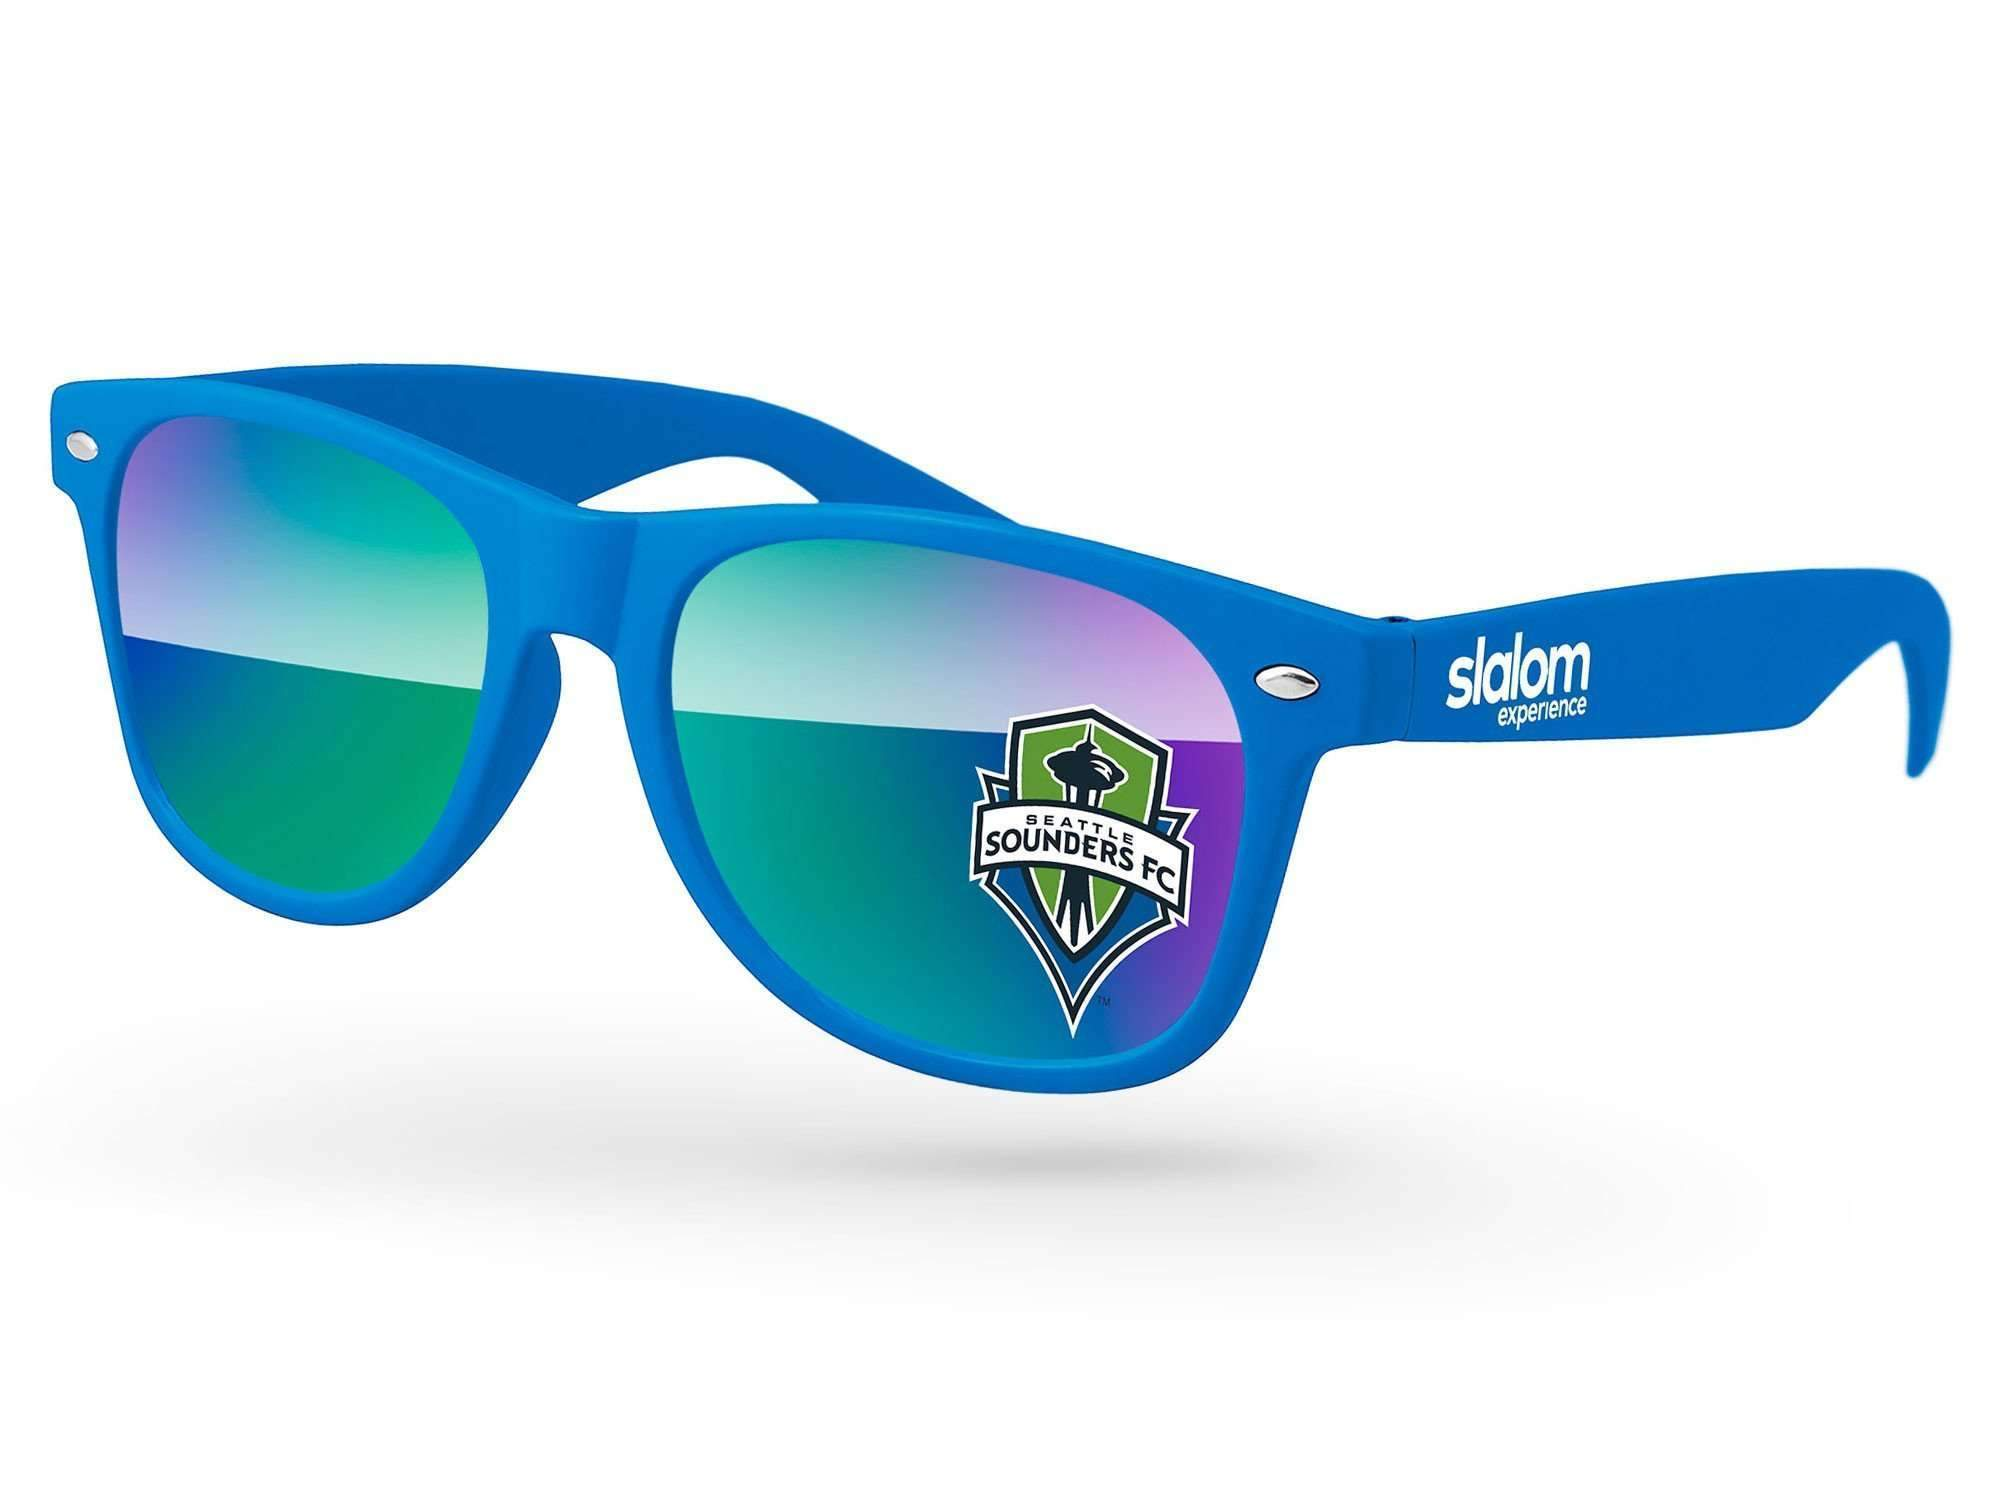 Retro Mirror Promotional Sunglasses w/ full-color lens imprint & 1-color temple imprint